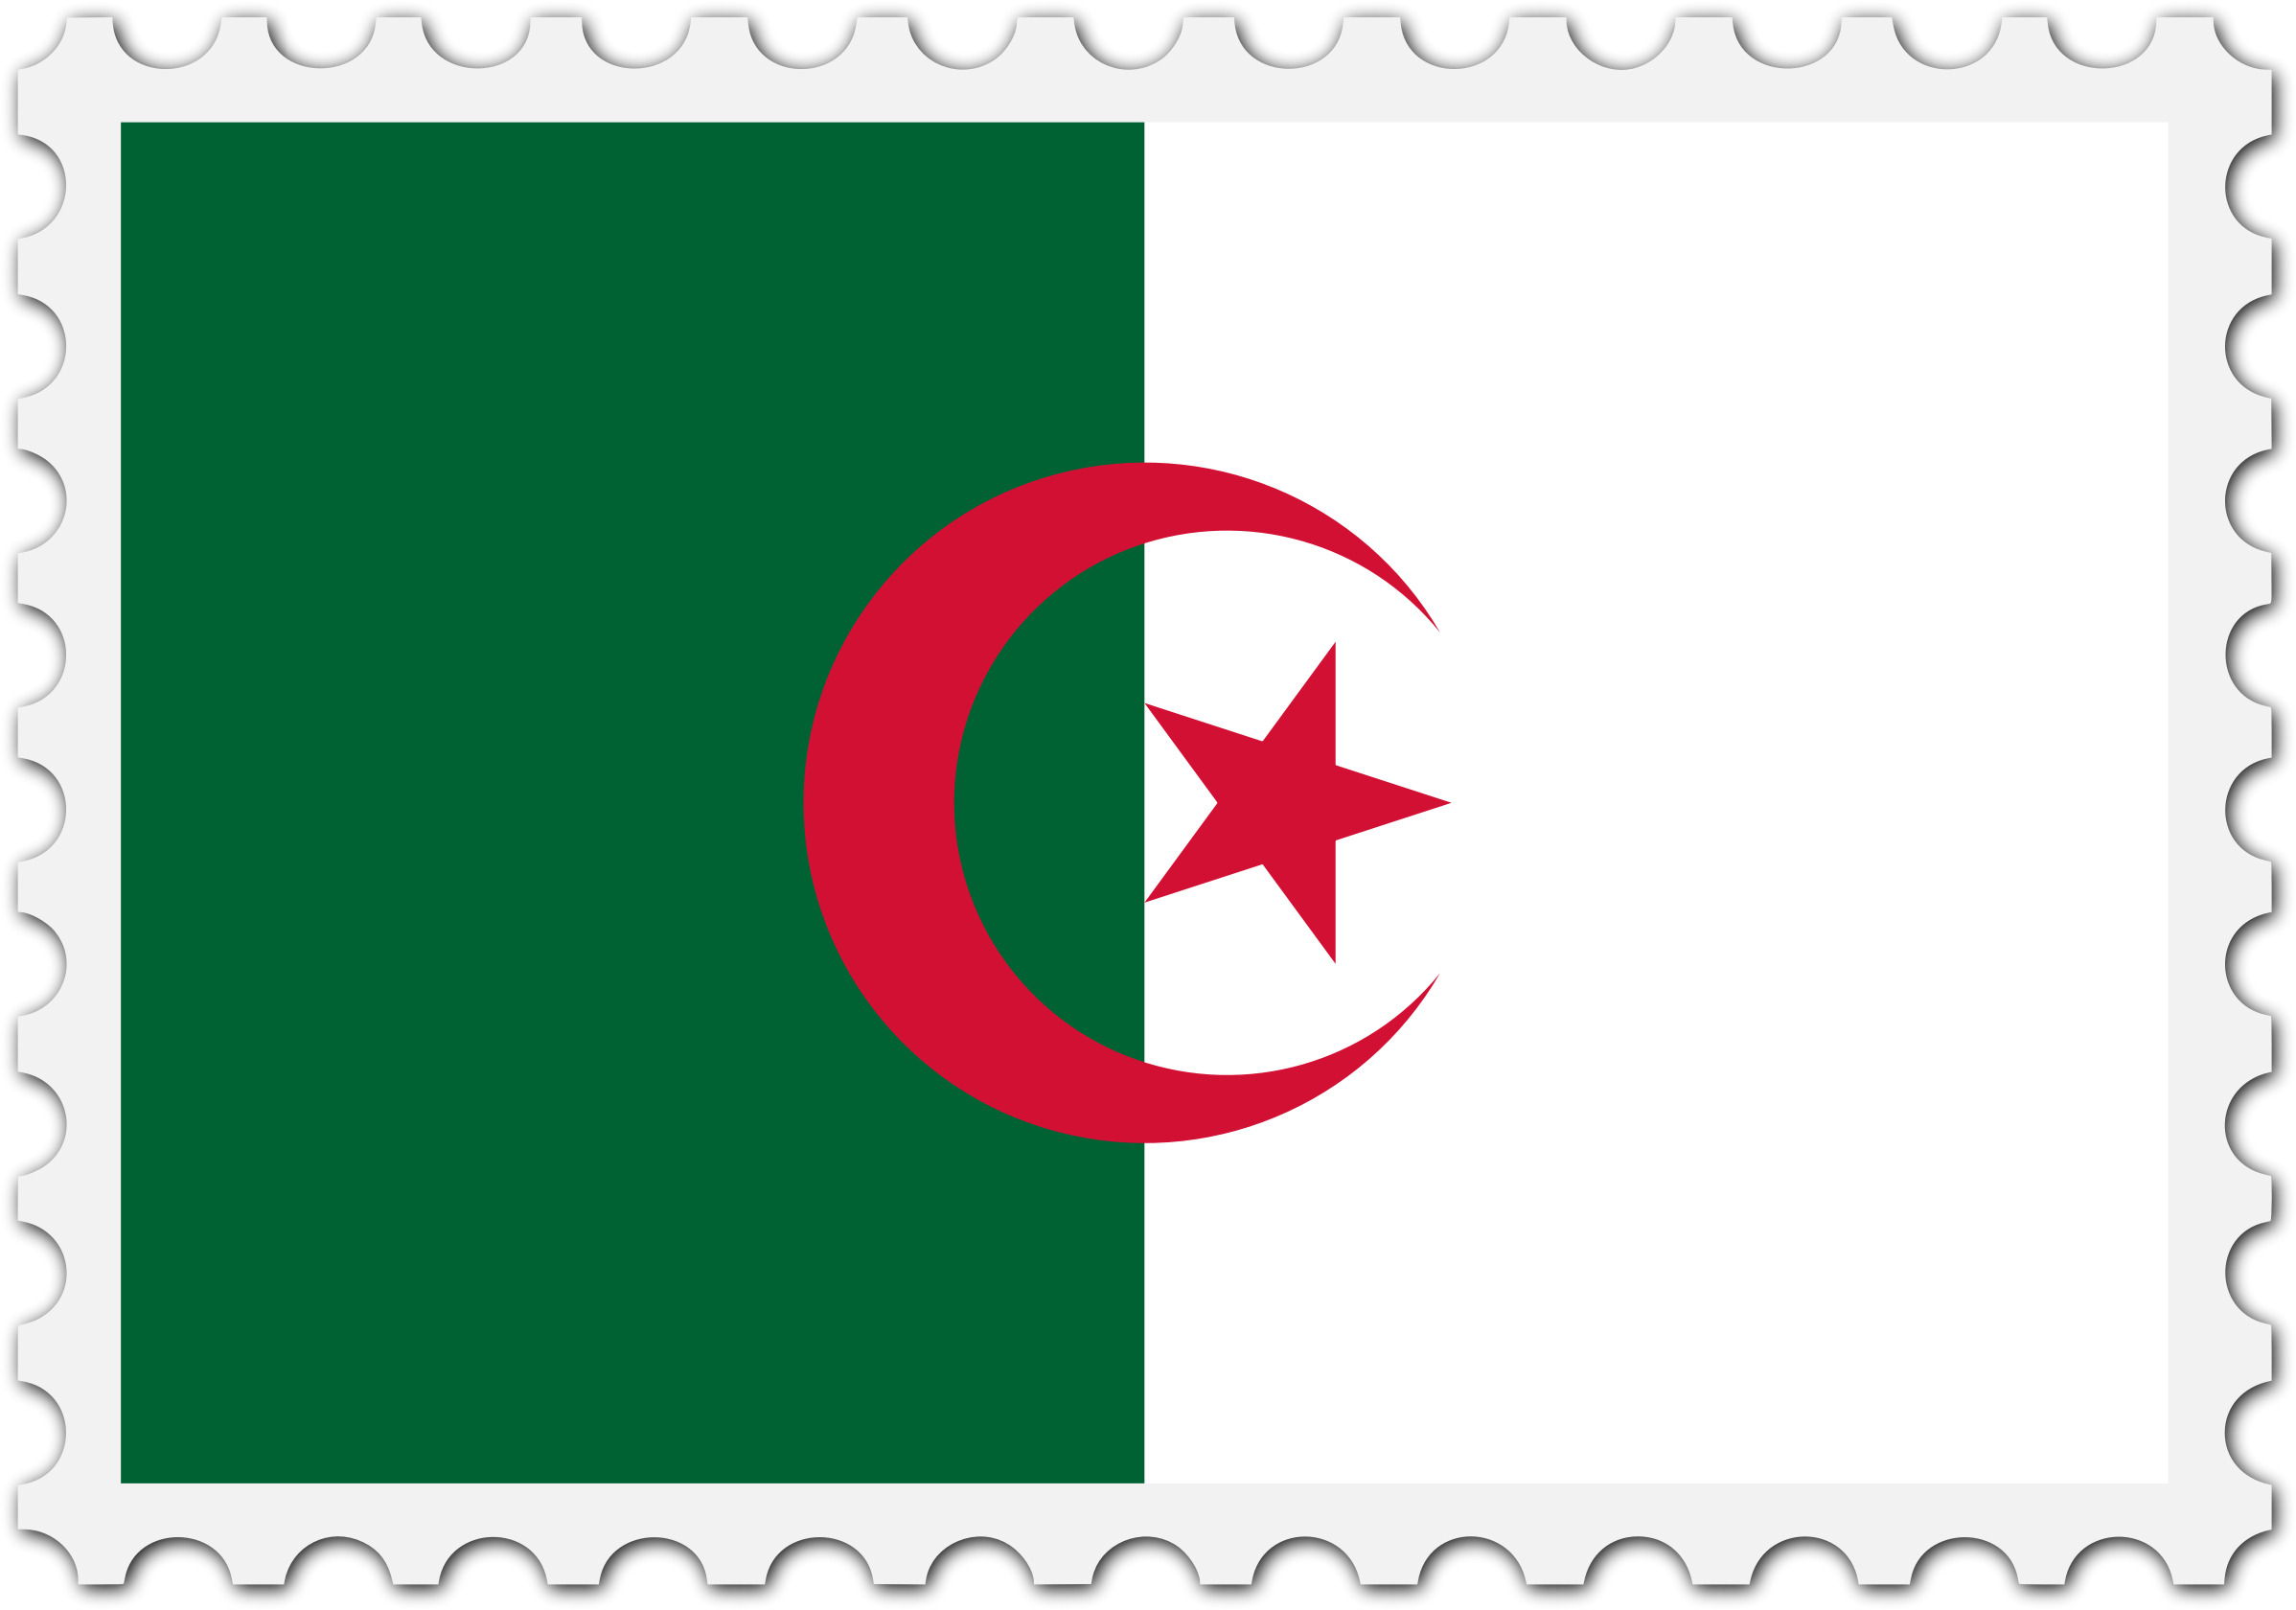 Algeria flag stamp by Firkin